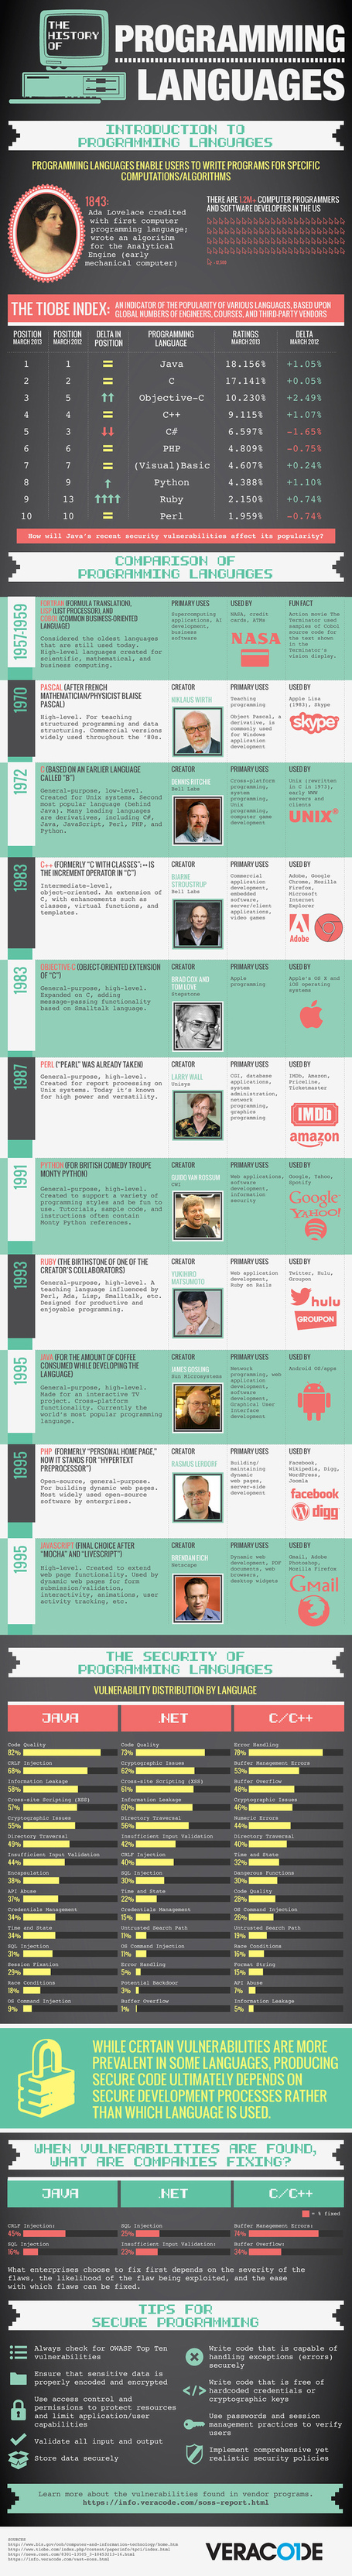 Infographic: The History of Programming Languages | STEM Education models and innovations with Gaming | Scoop.it